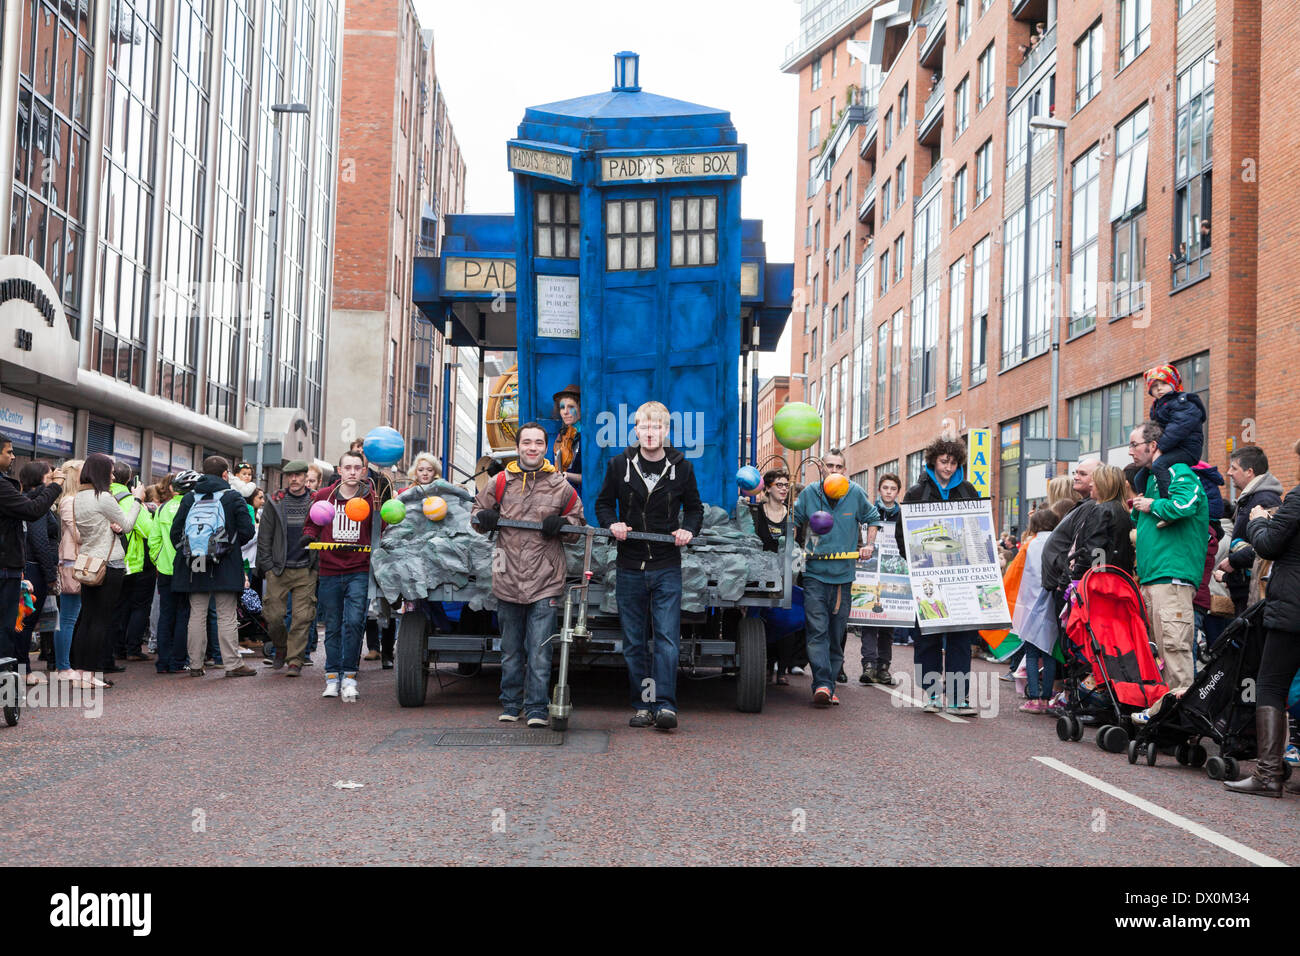 Belfast, Northern Ireland. 16th March 2014. The TARDIS in the parade Credit:  J Orr/Alamy Live News - Stock Image